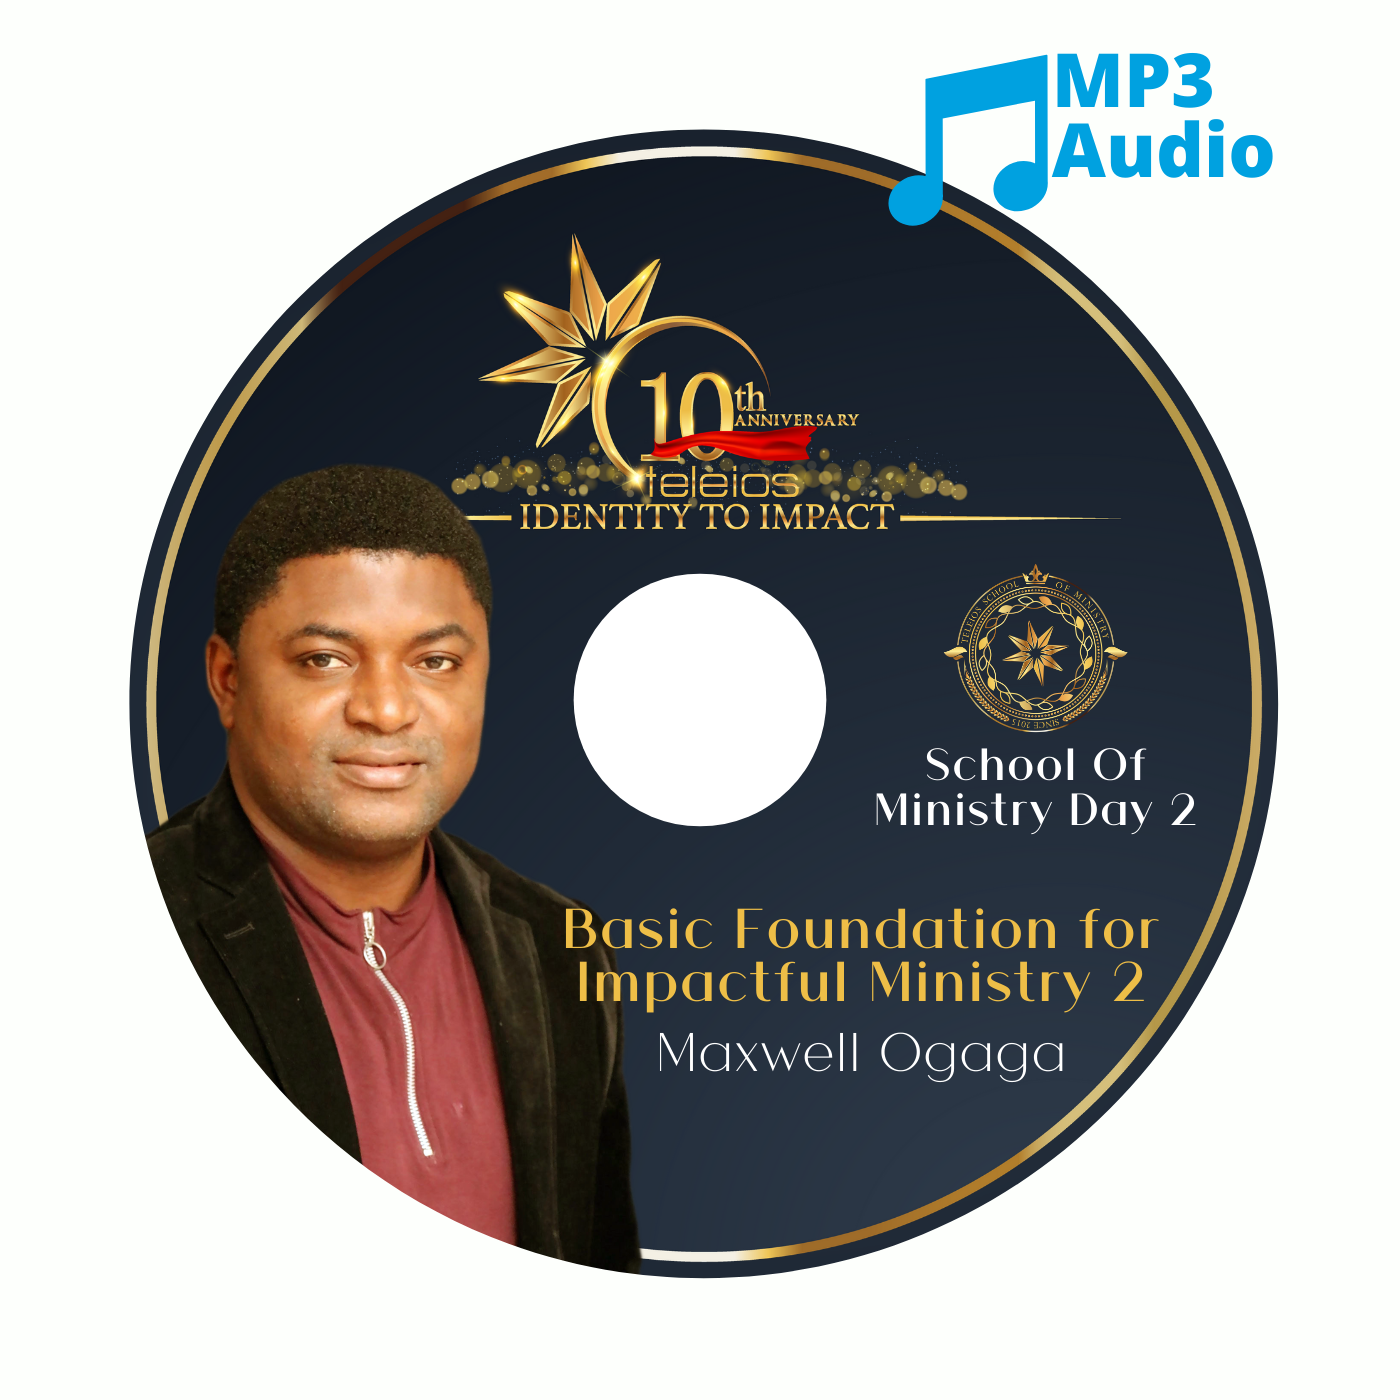 Basic Foundation for Impactful Ministry 2